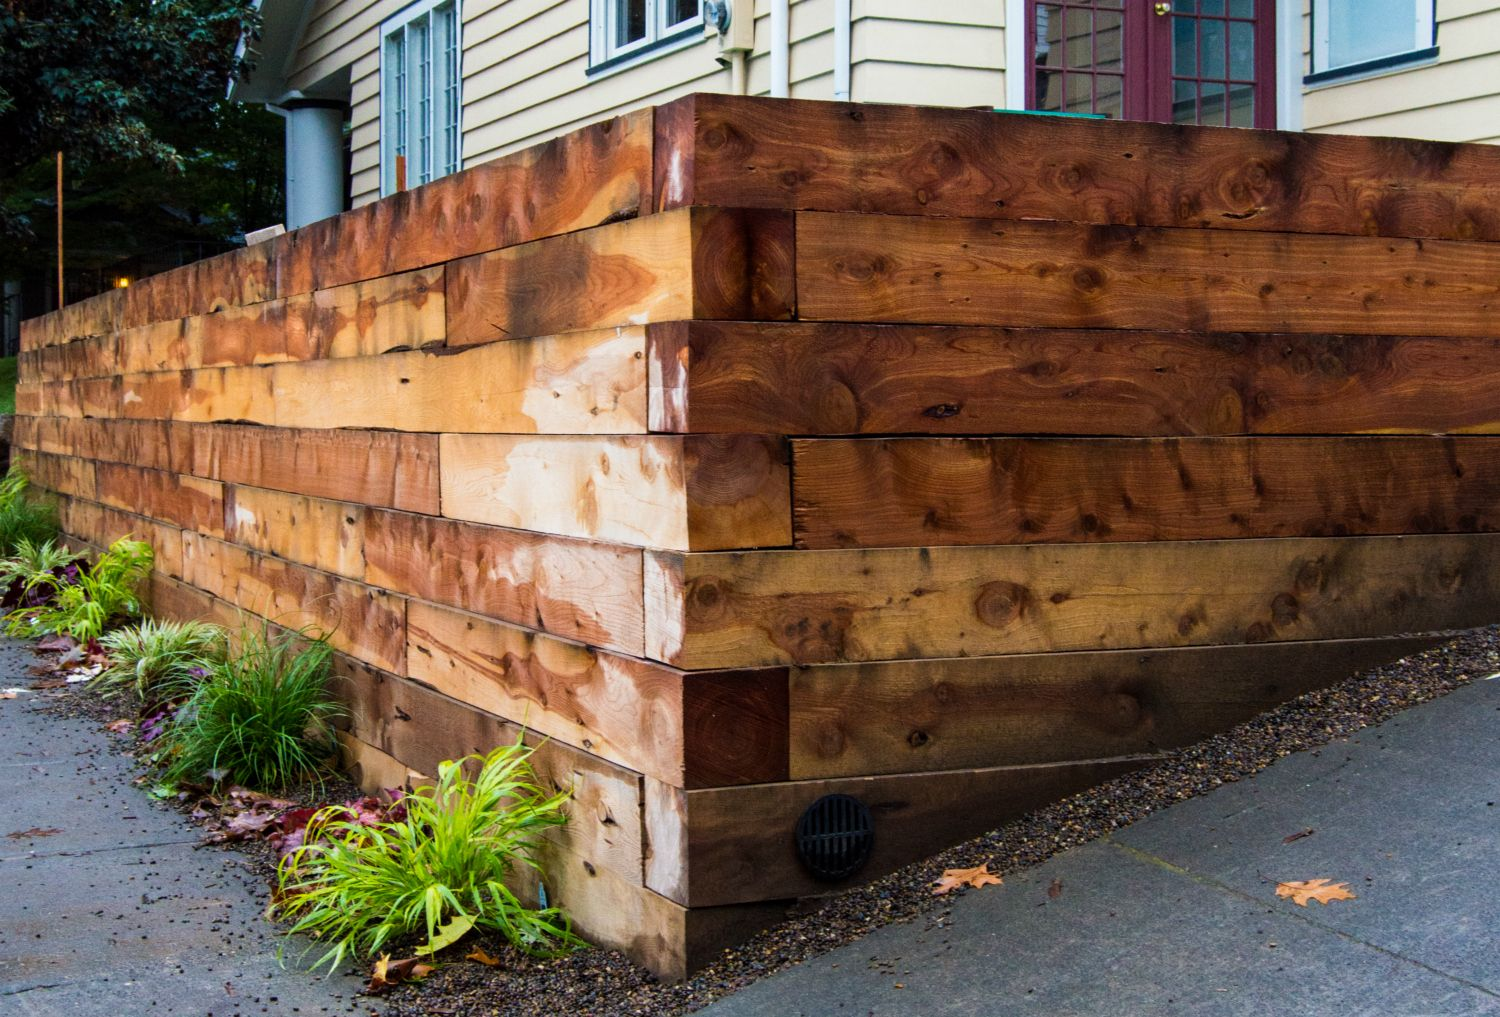 Hefty 6x6 Juniper Landscaping Timbers Were Used For This Beautiful Retaining Wall Chemical Wooden Retaining Wall Landscaping Retaining Walls Landscape Timbers